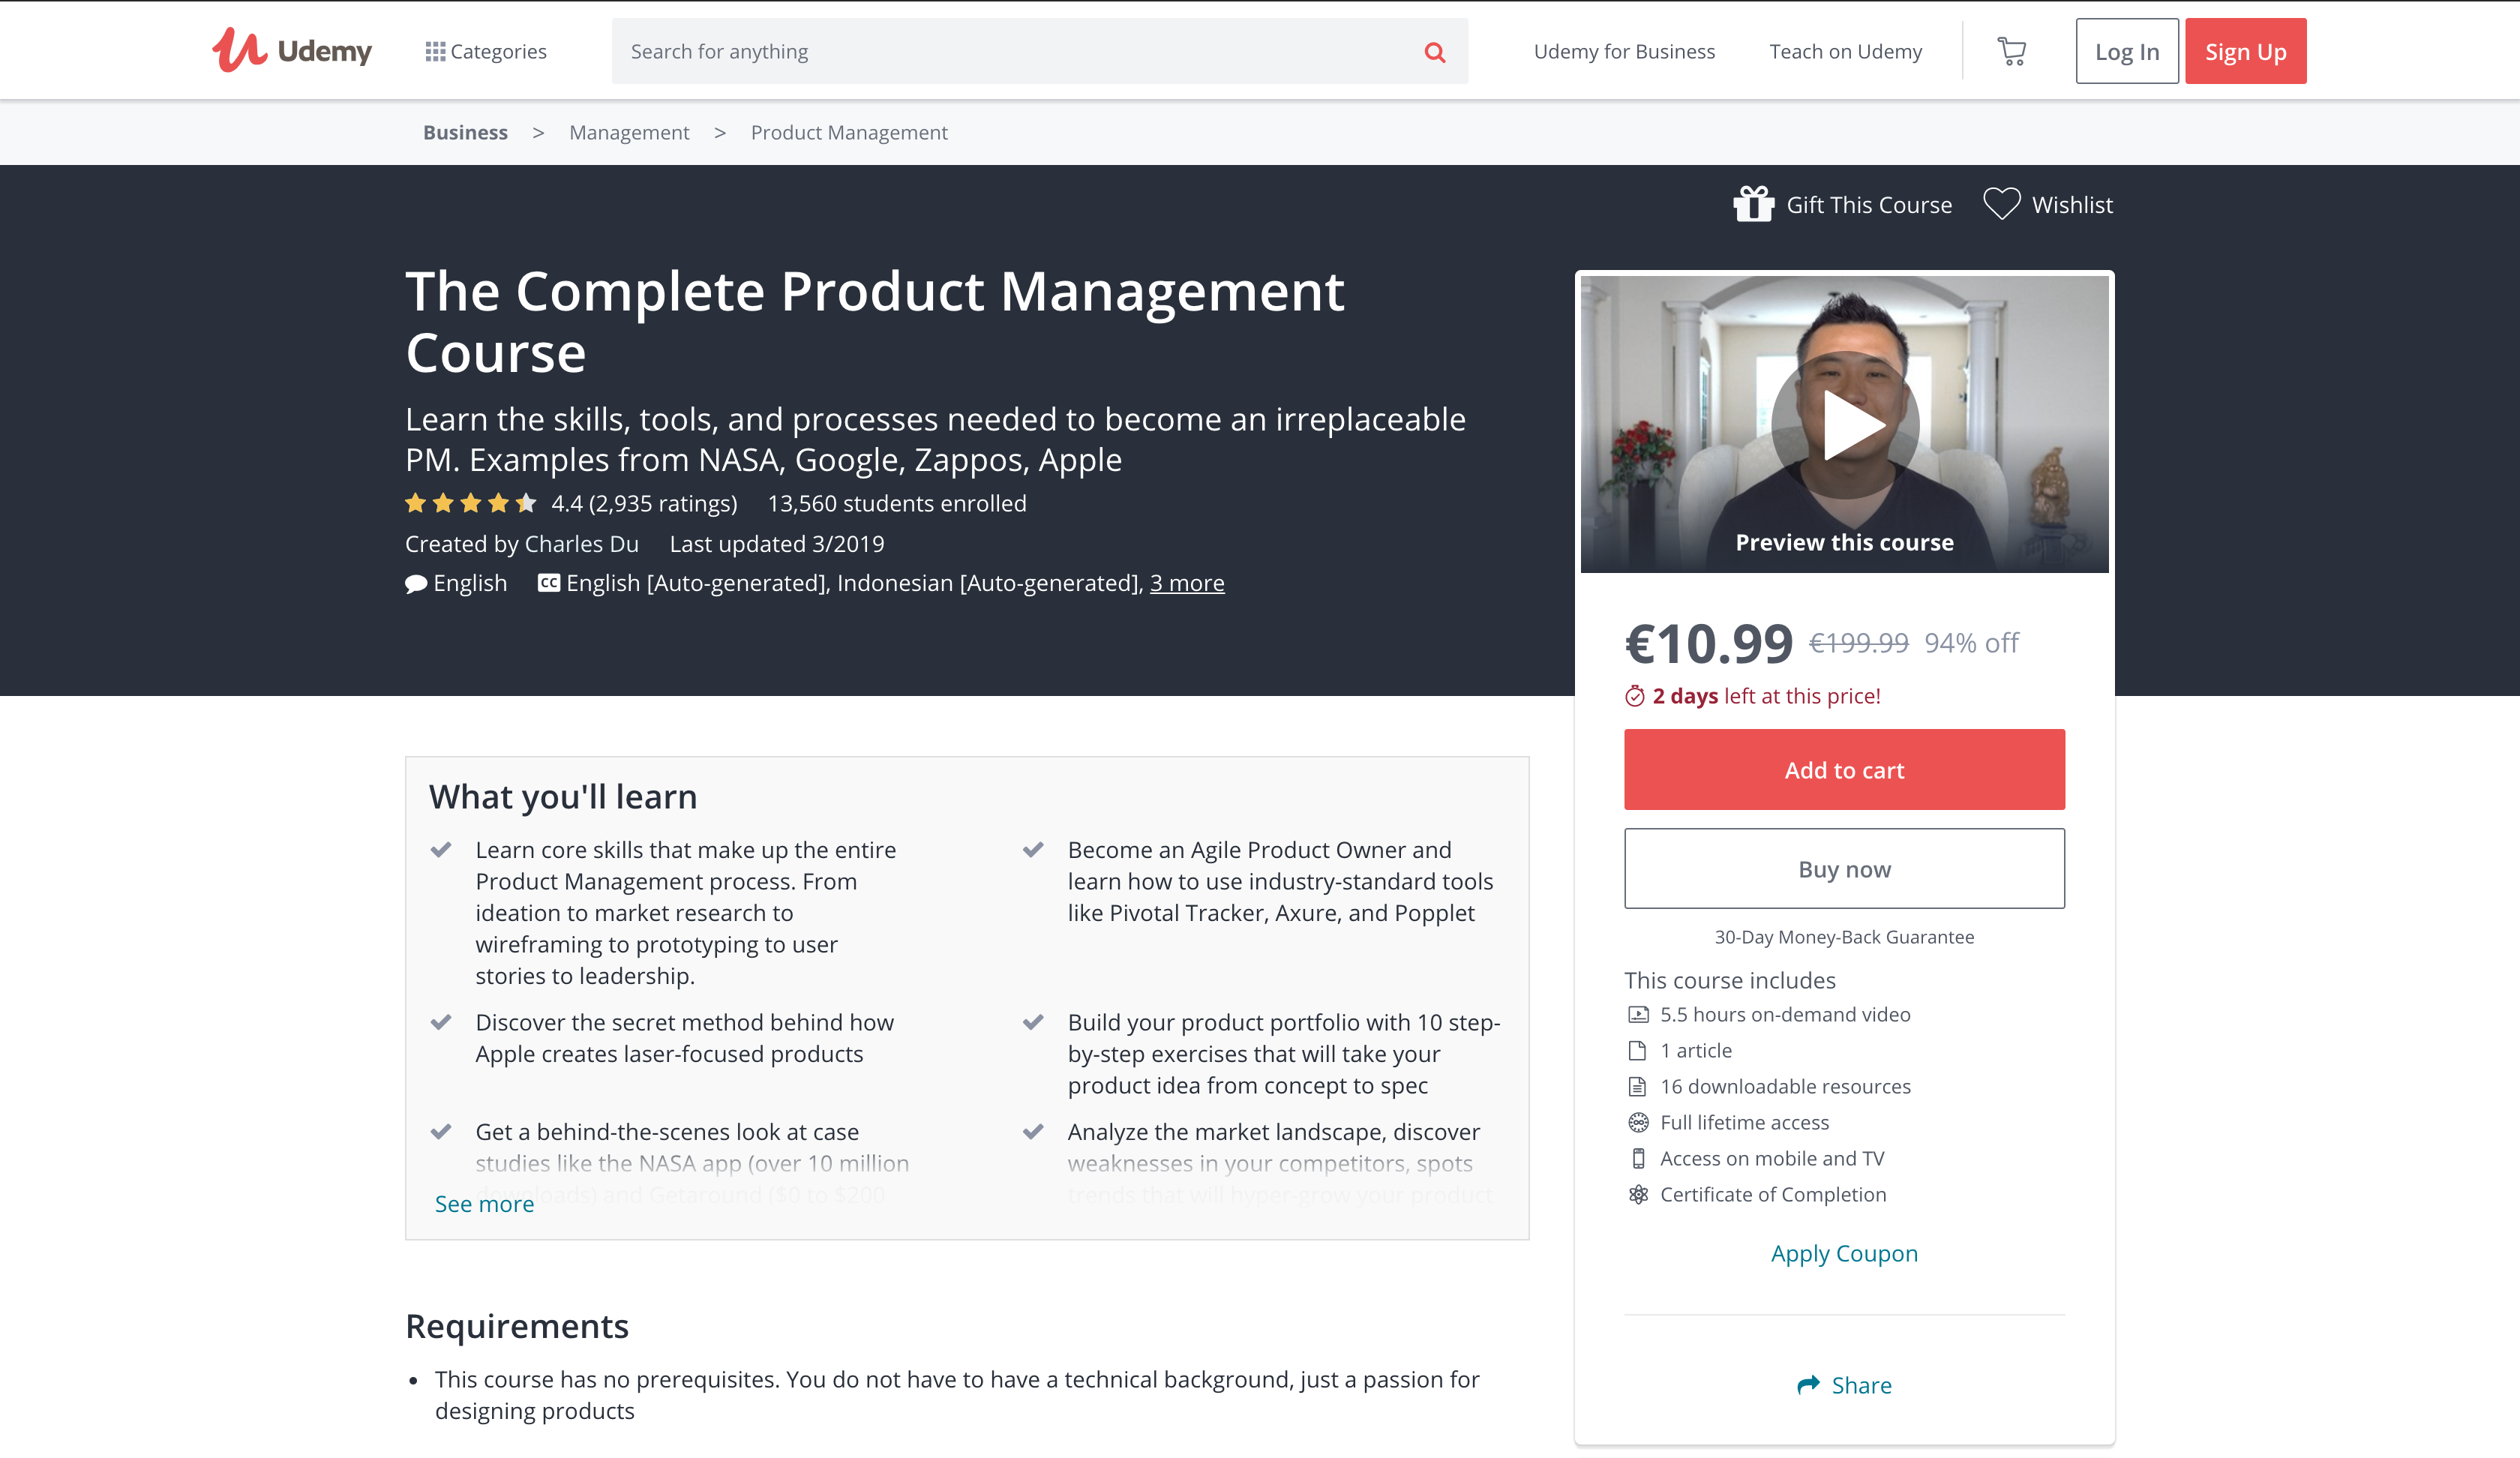 The Complete Product Management Course (Udemy)